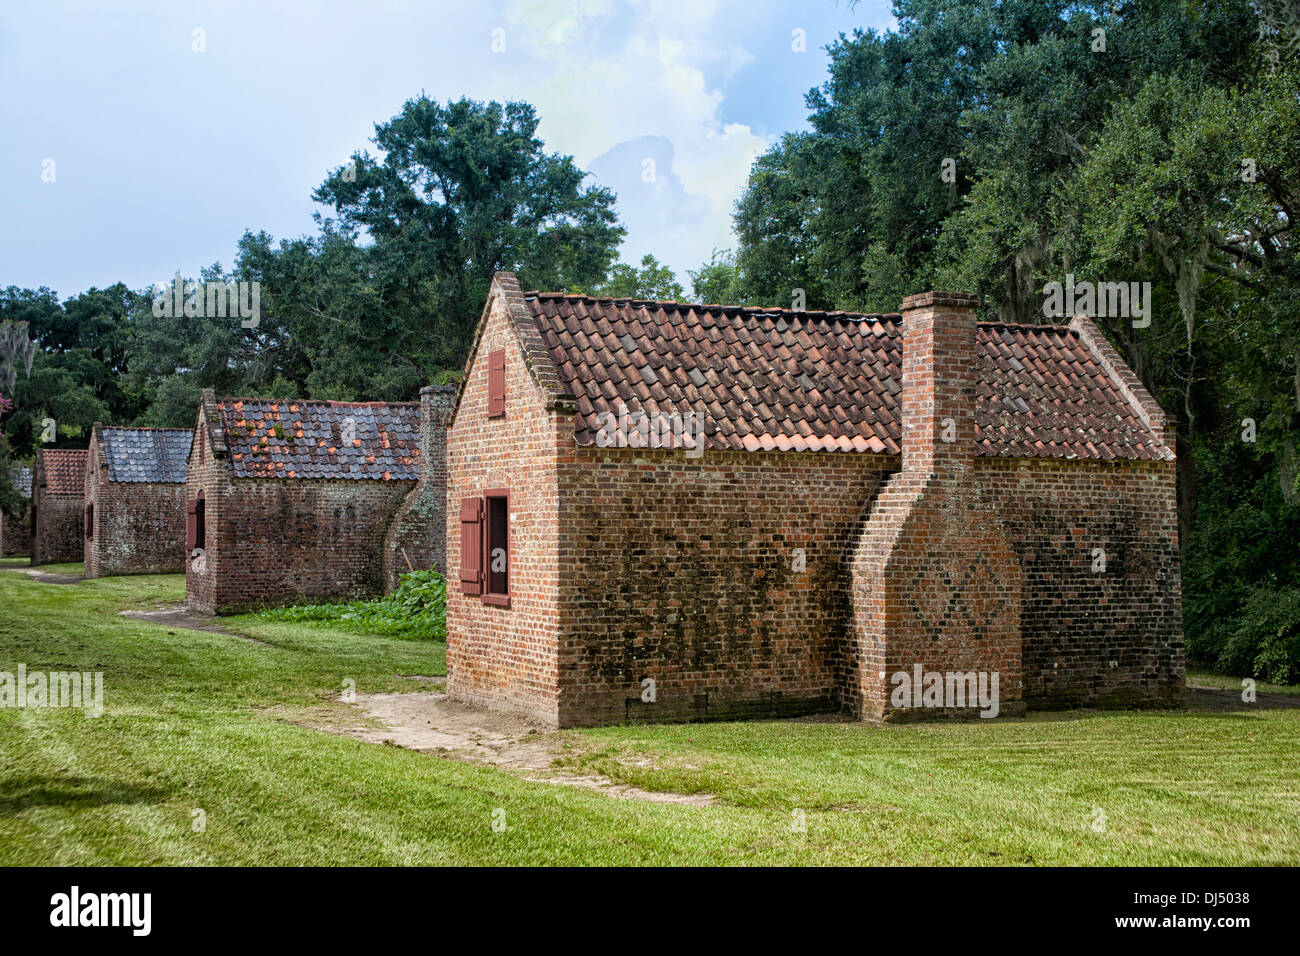 Slave houses at Boone Hall Plantation in Charleston, South Carolina - Stock Image